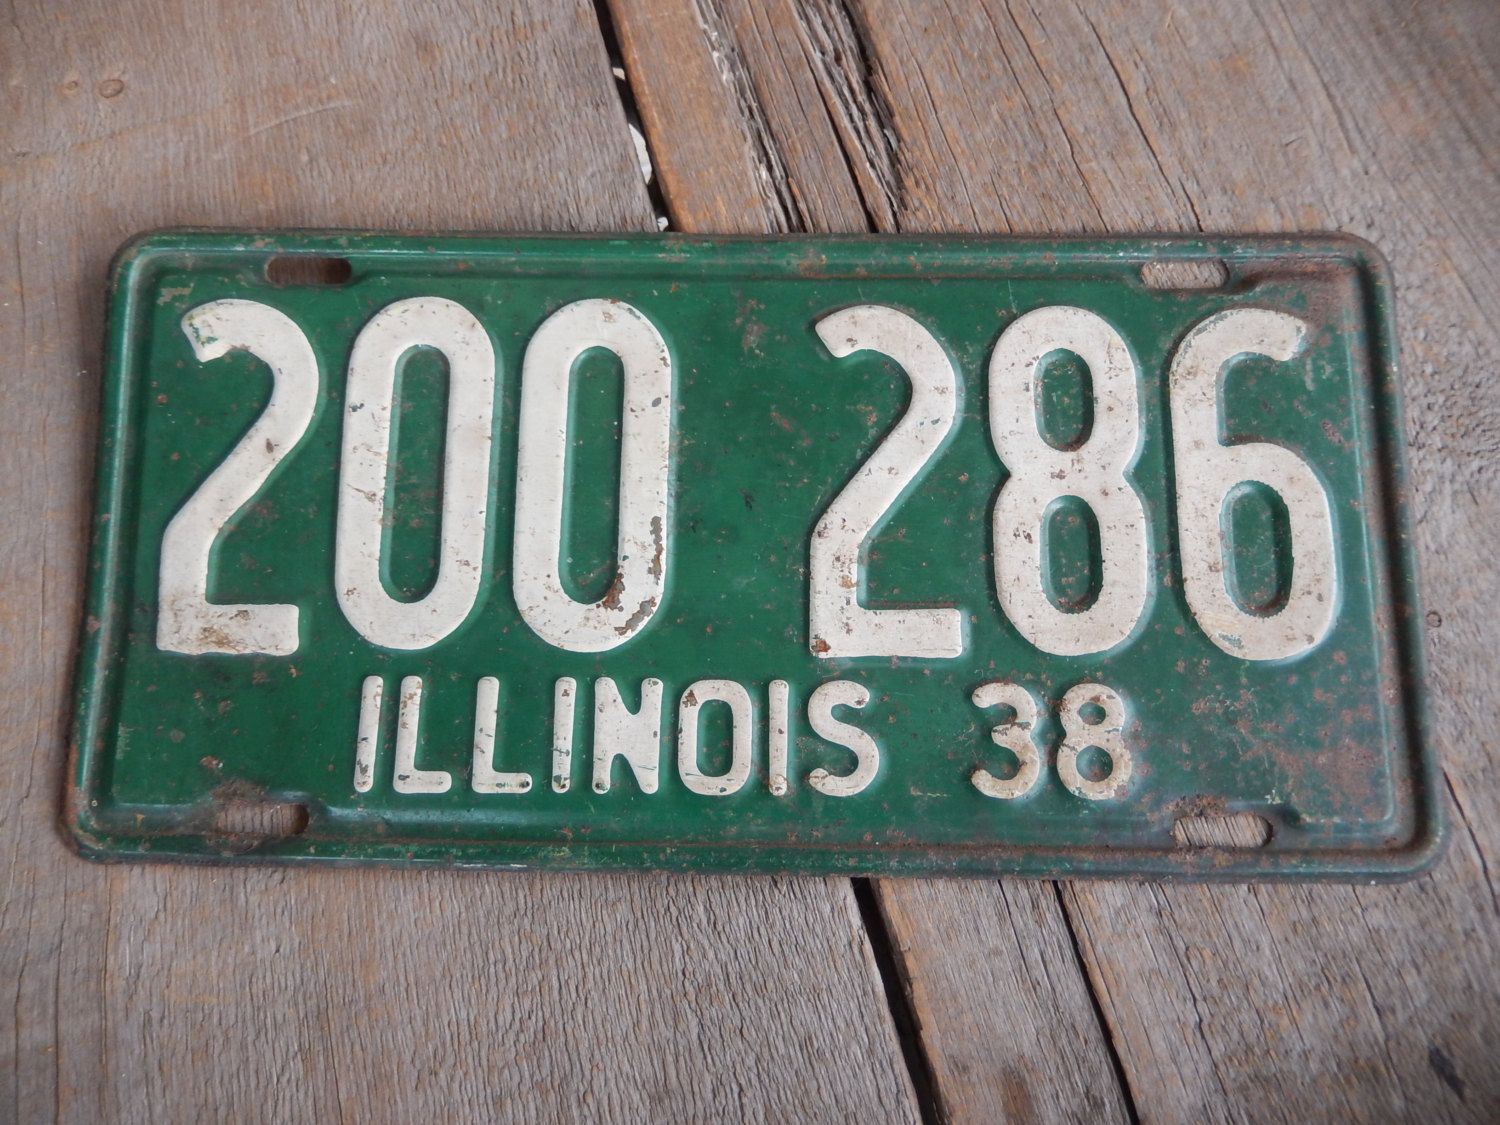 License Plate 1938 Illinois Rustic Old Metal Sign Green Wall Hanging ...